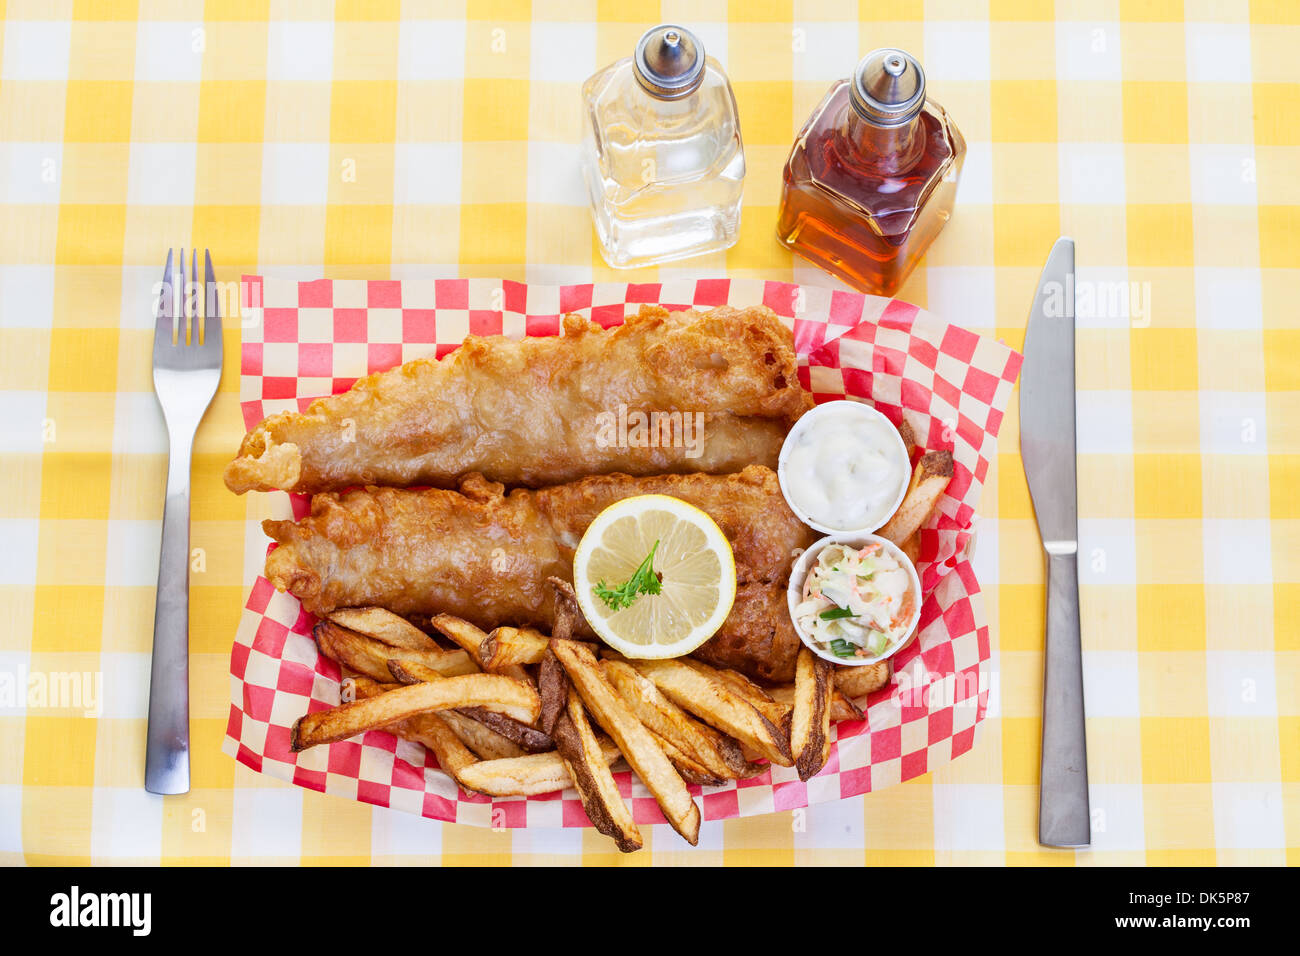 A traditional serving of fish and chips - Stock Image